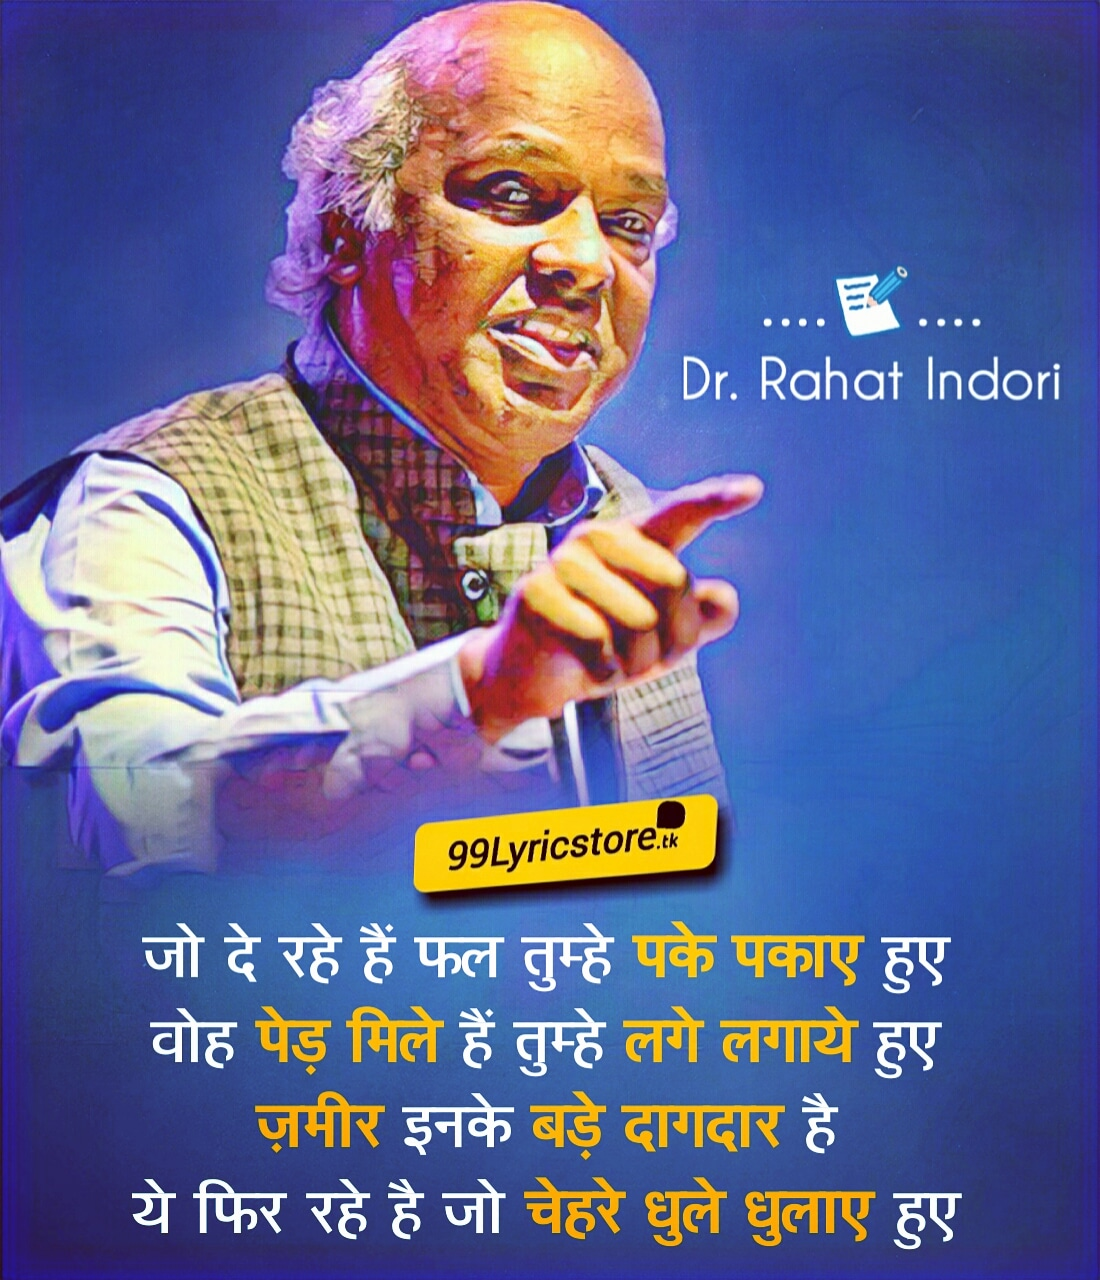 Jo De Rahe Hain Phal Tumhe Pake Pakaaye Hue written and performed by Rahat Indori. This poetry is best Shayari and Ghazal of Rahat Indori.